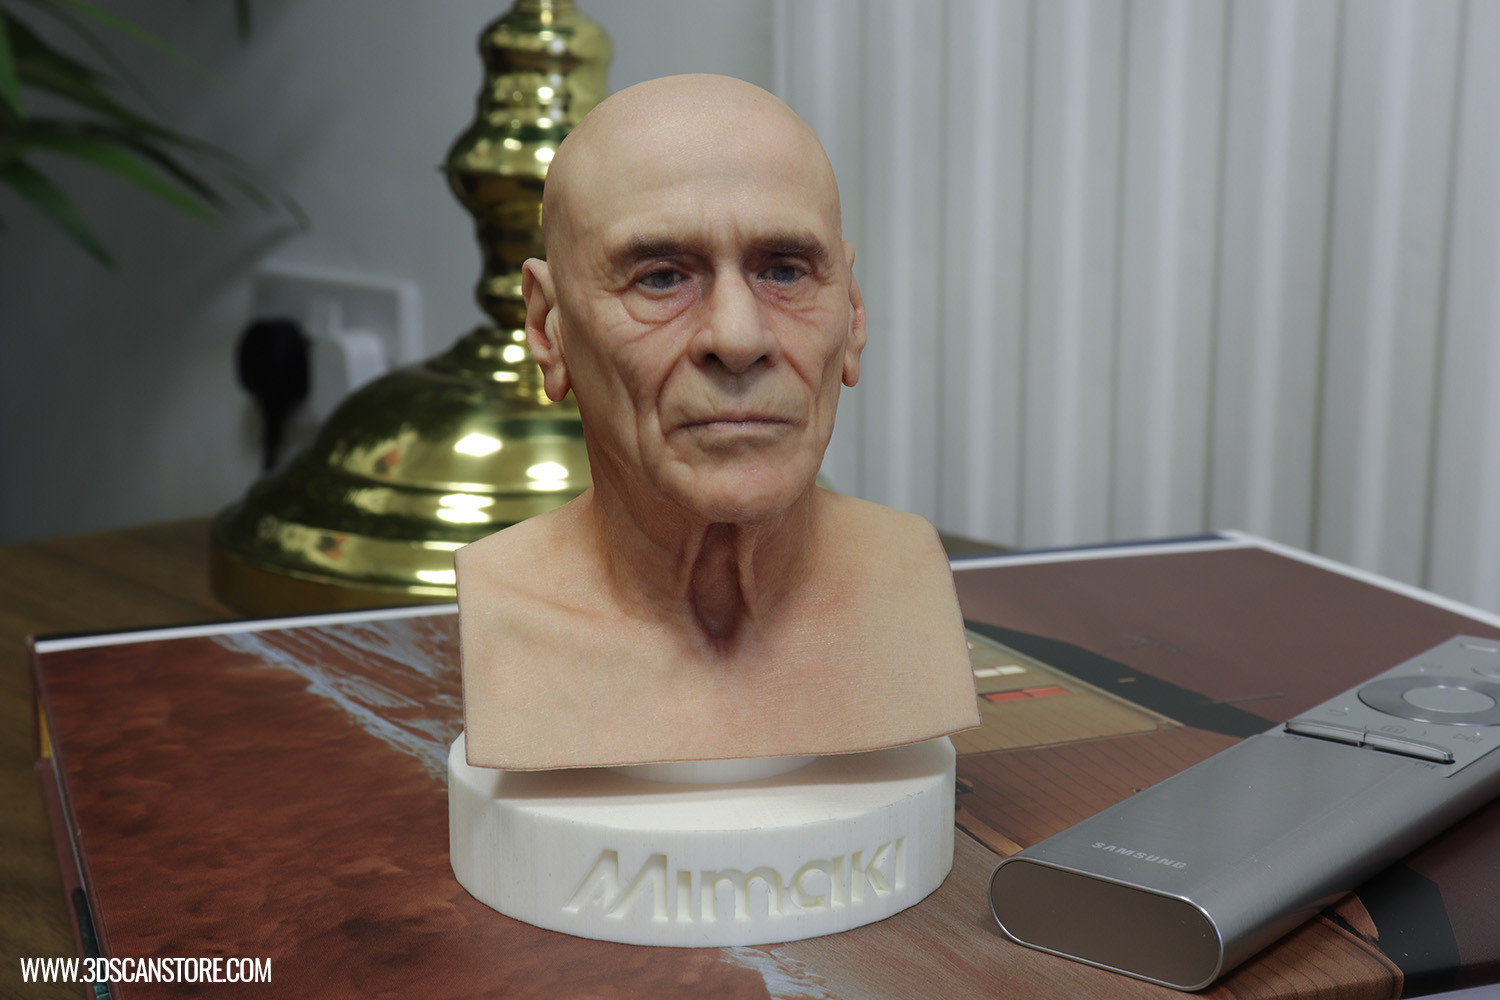 ArtStation - Mimaki Head Scan 3D Print, James Busby